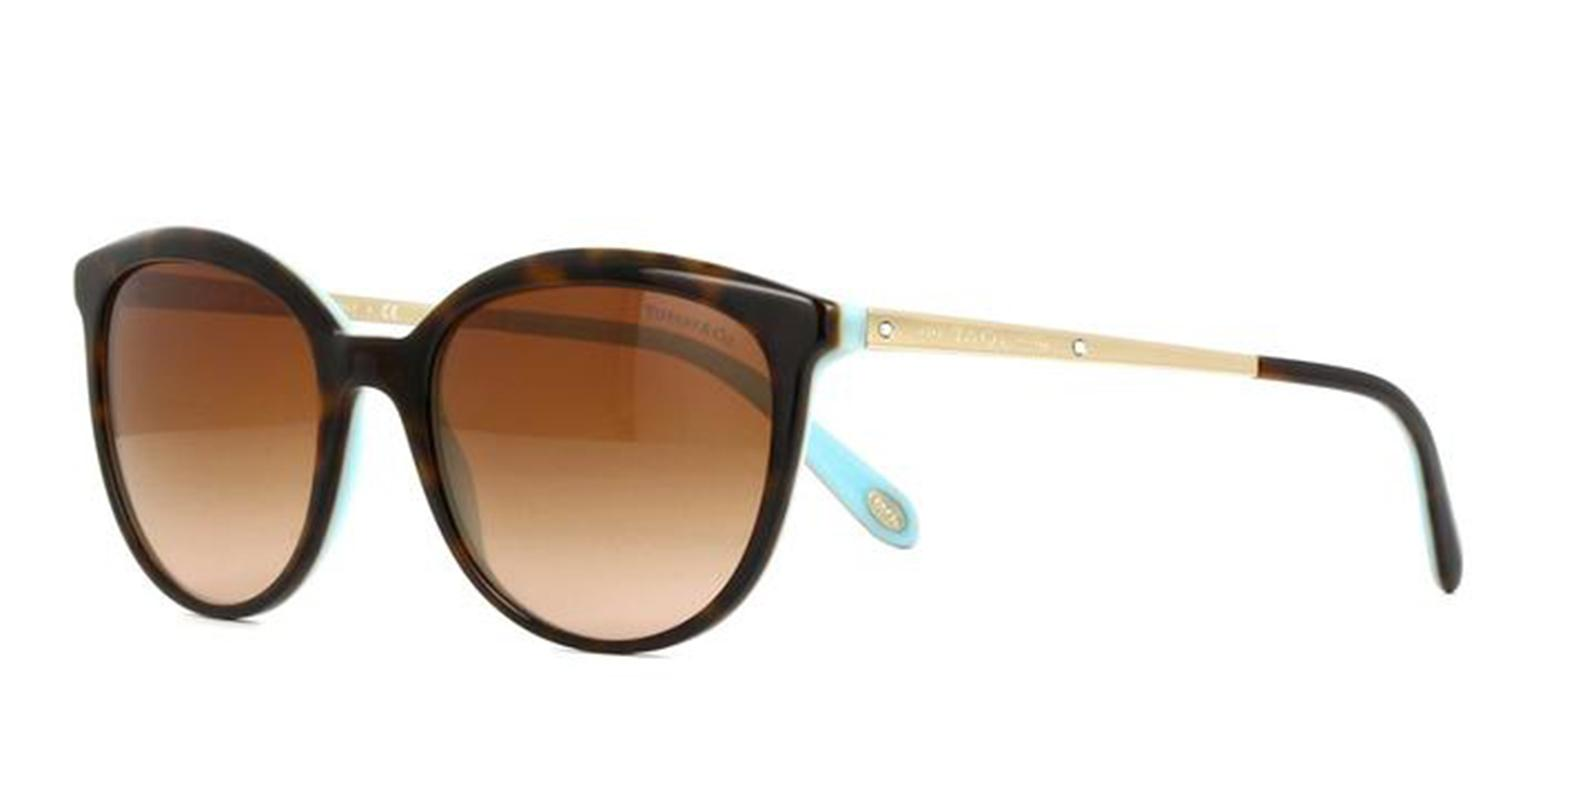 Tiffany TF4117B Sonnenbrille Havanna / Blau 81343B 54mm vWVg61